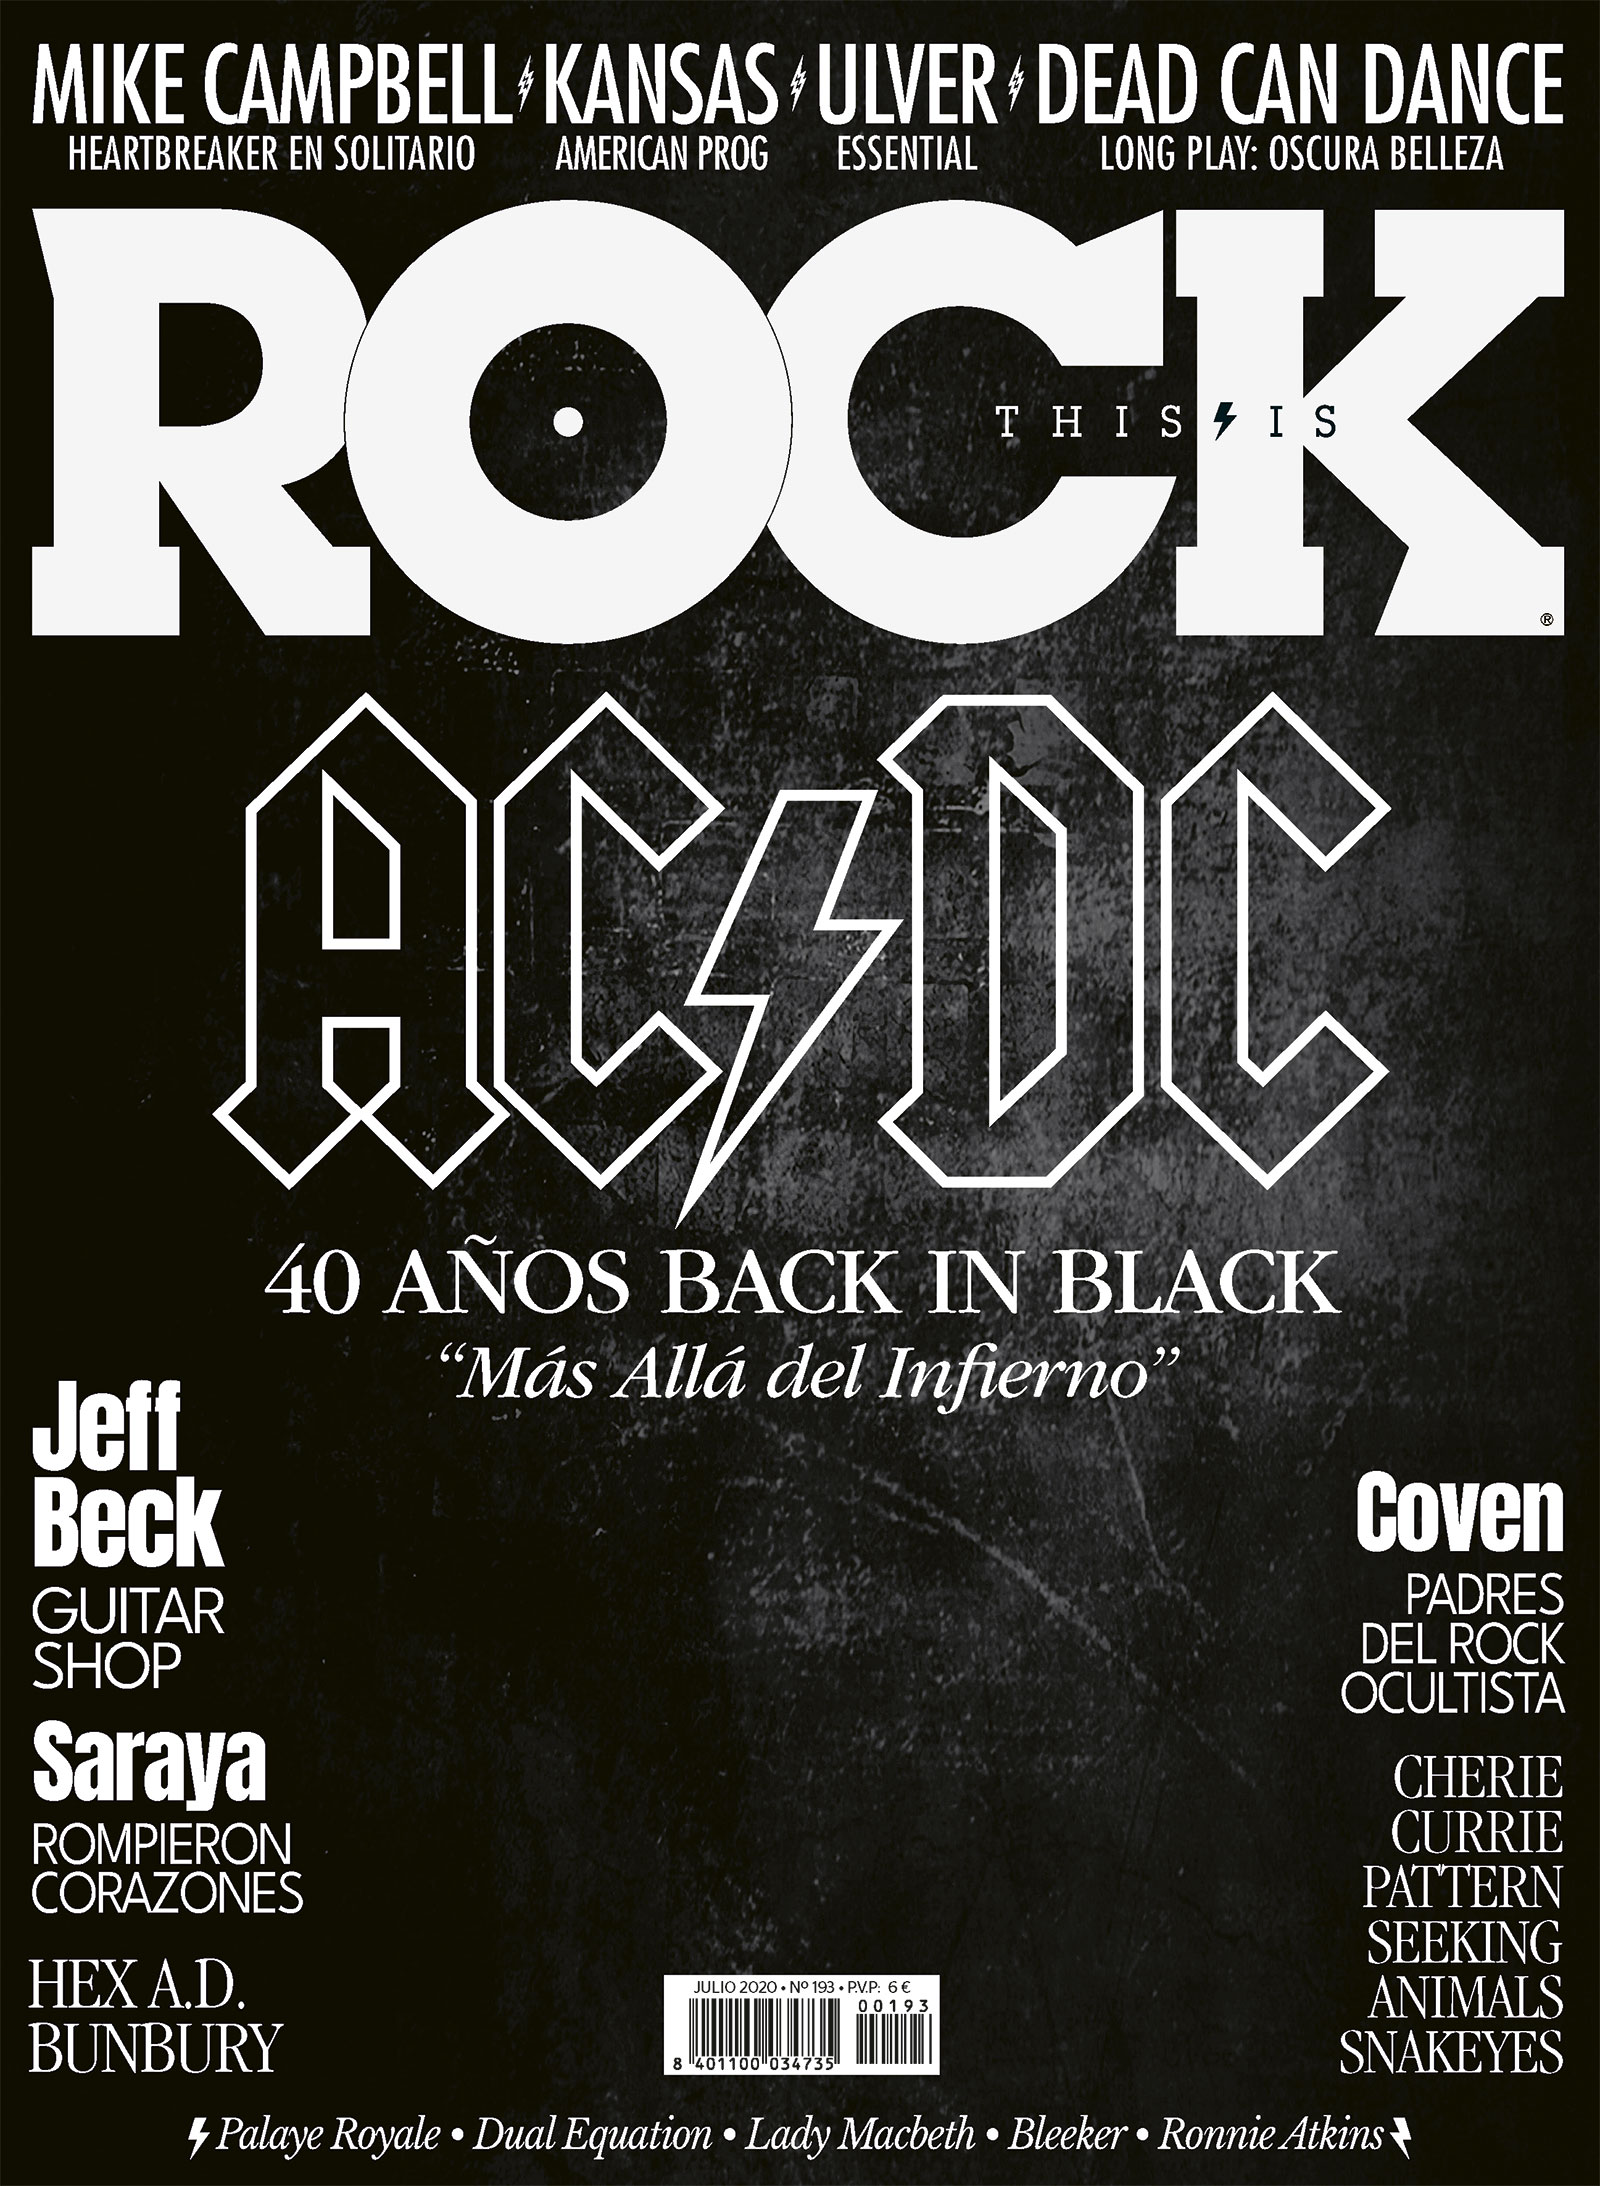 This Is Rock JuLio 2020 This-Is-Rock-193-Julio-2020-La-Revista-Toda-la-Gente-del-Rock-Tu-Magazine-de-Classic-Rock-Hard-Rock-Heavy-Metal-Prog-Rock-Blues-Rock-